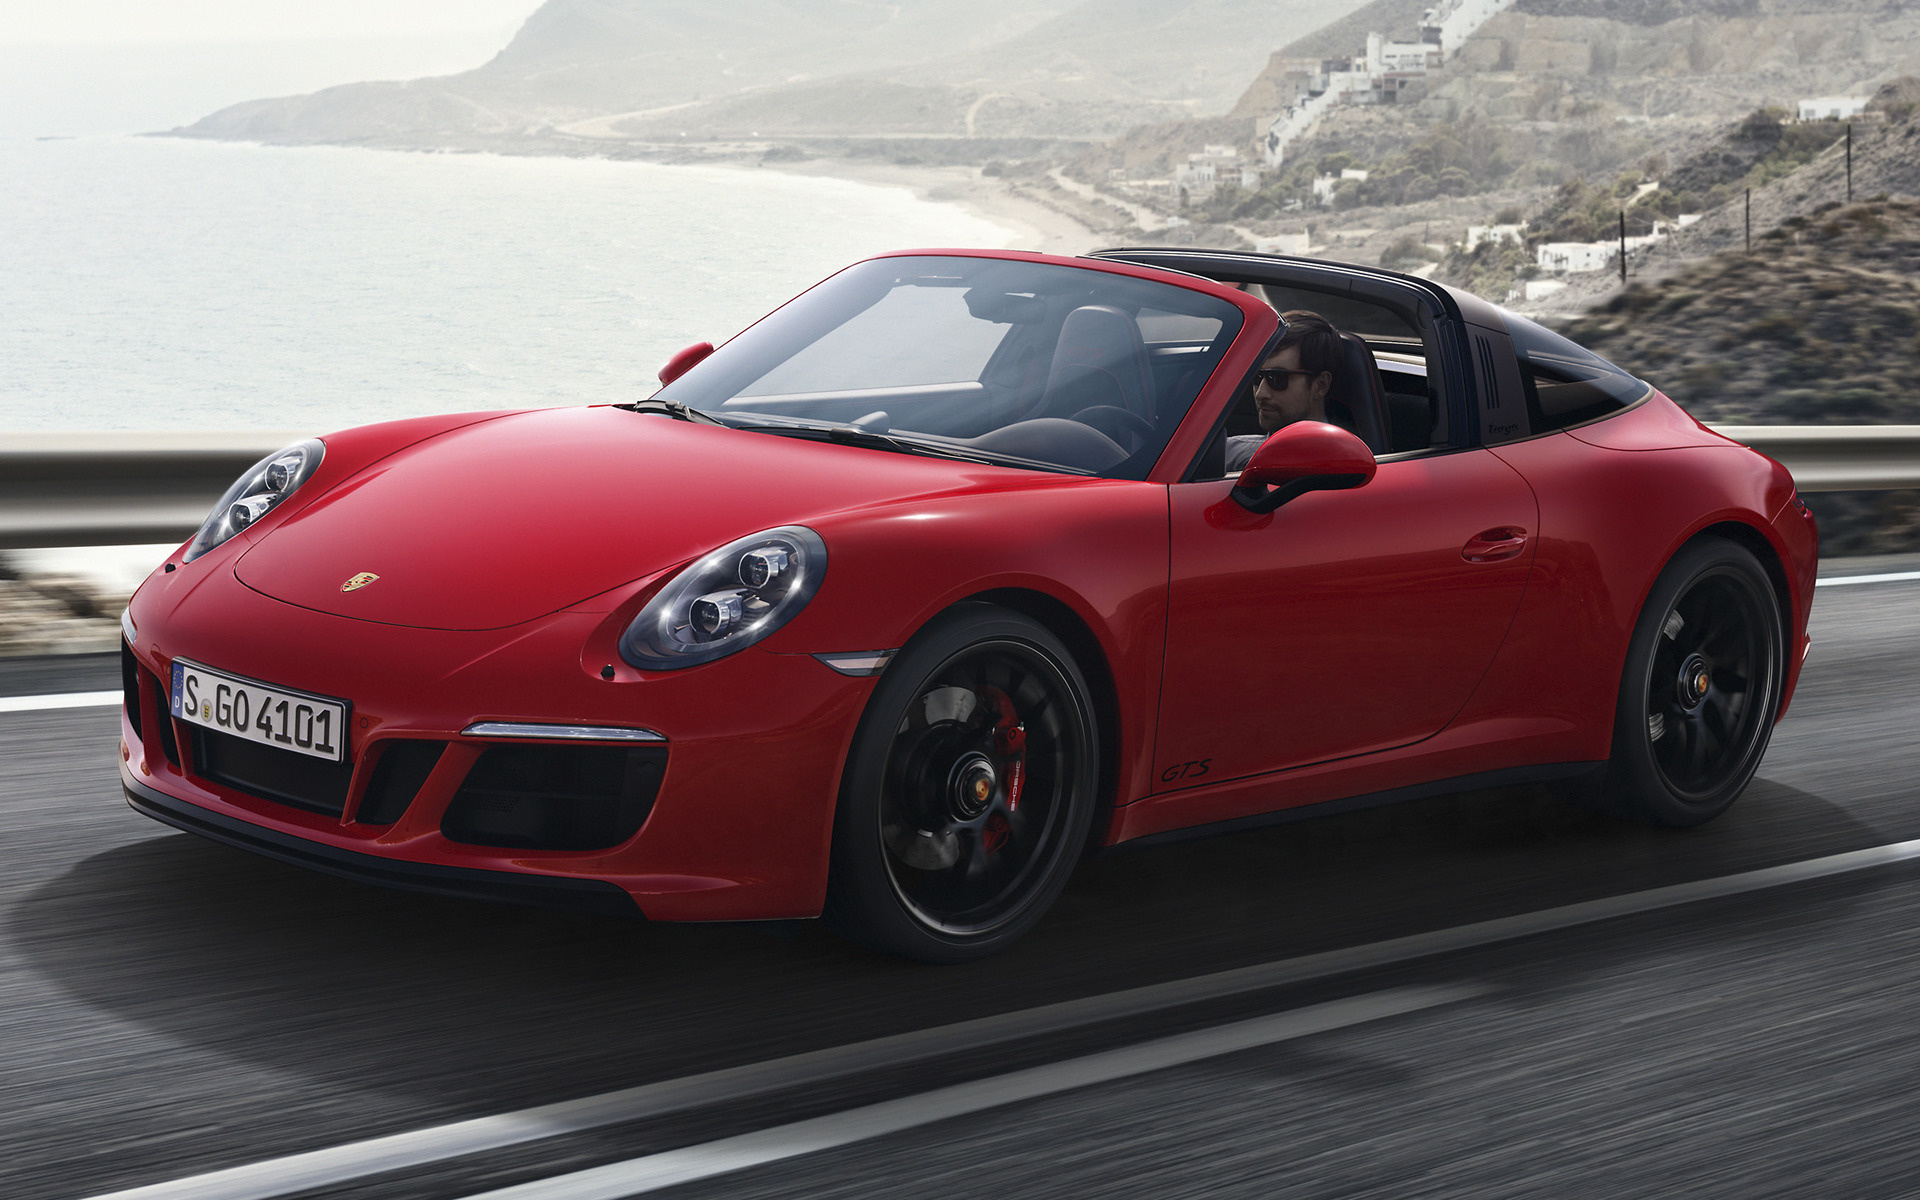 2017 Porsche 911 Targa Gts Wallpapers And Hd Images